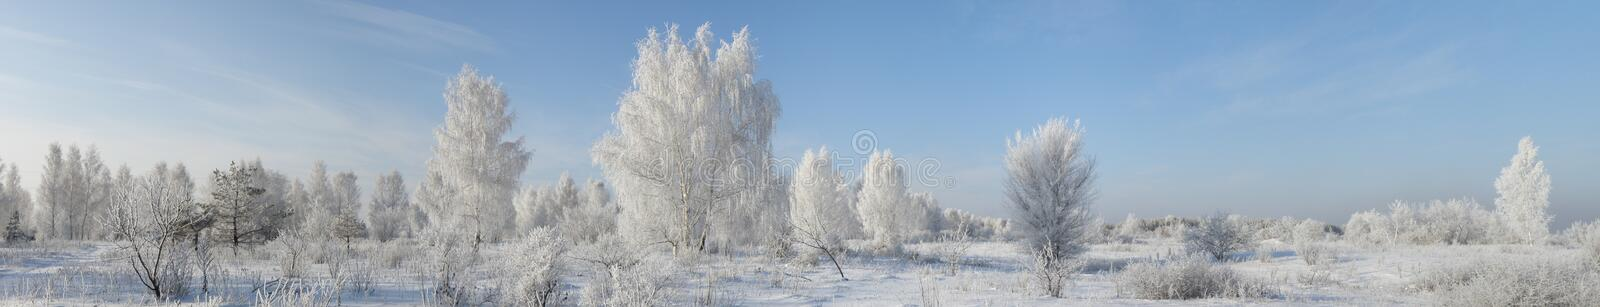 Winter-Panorama stockbild